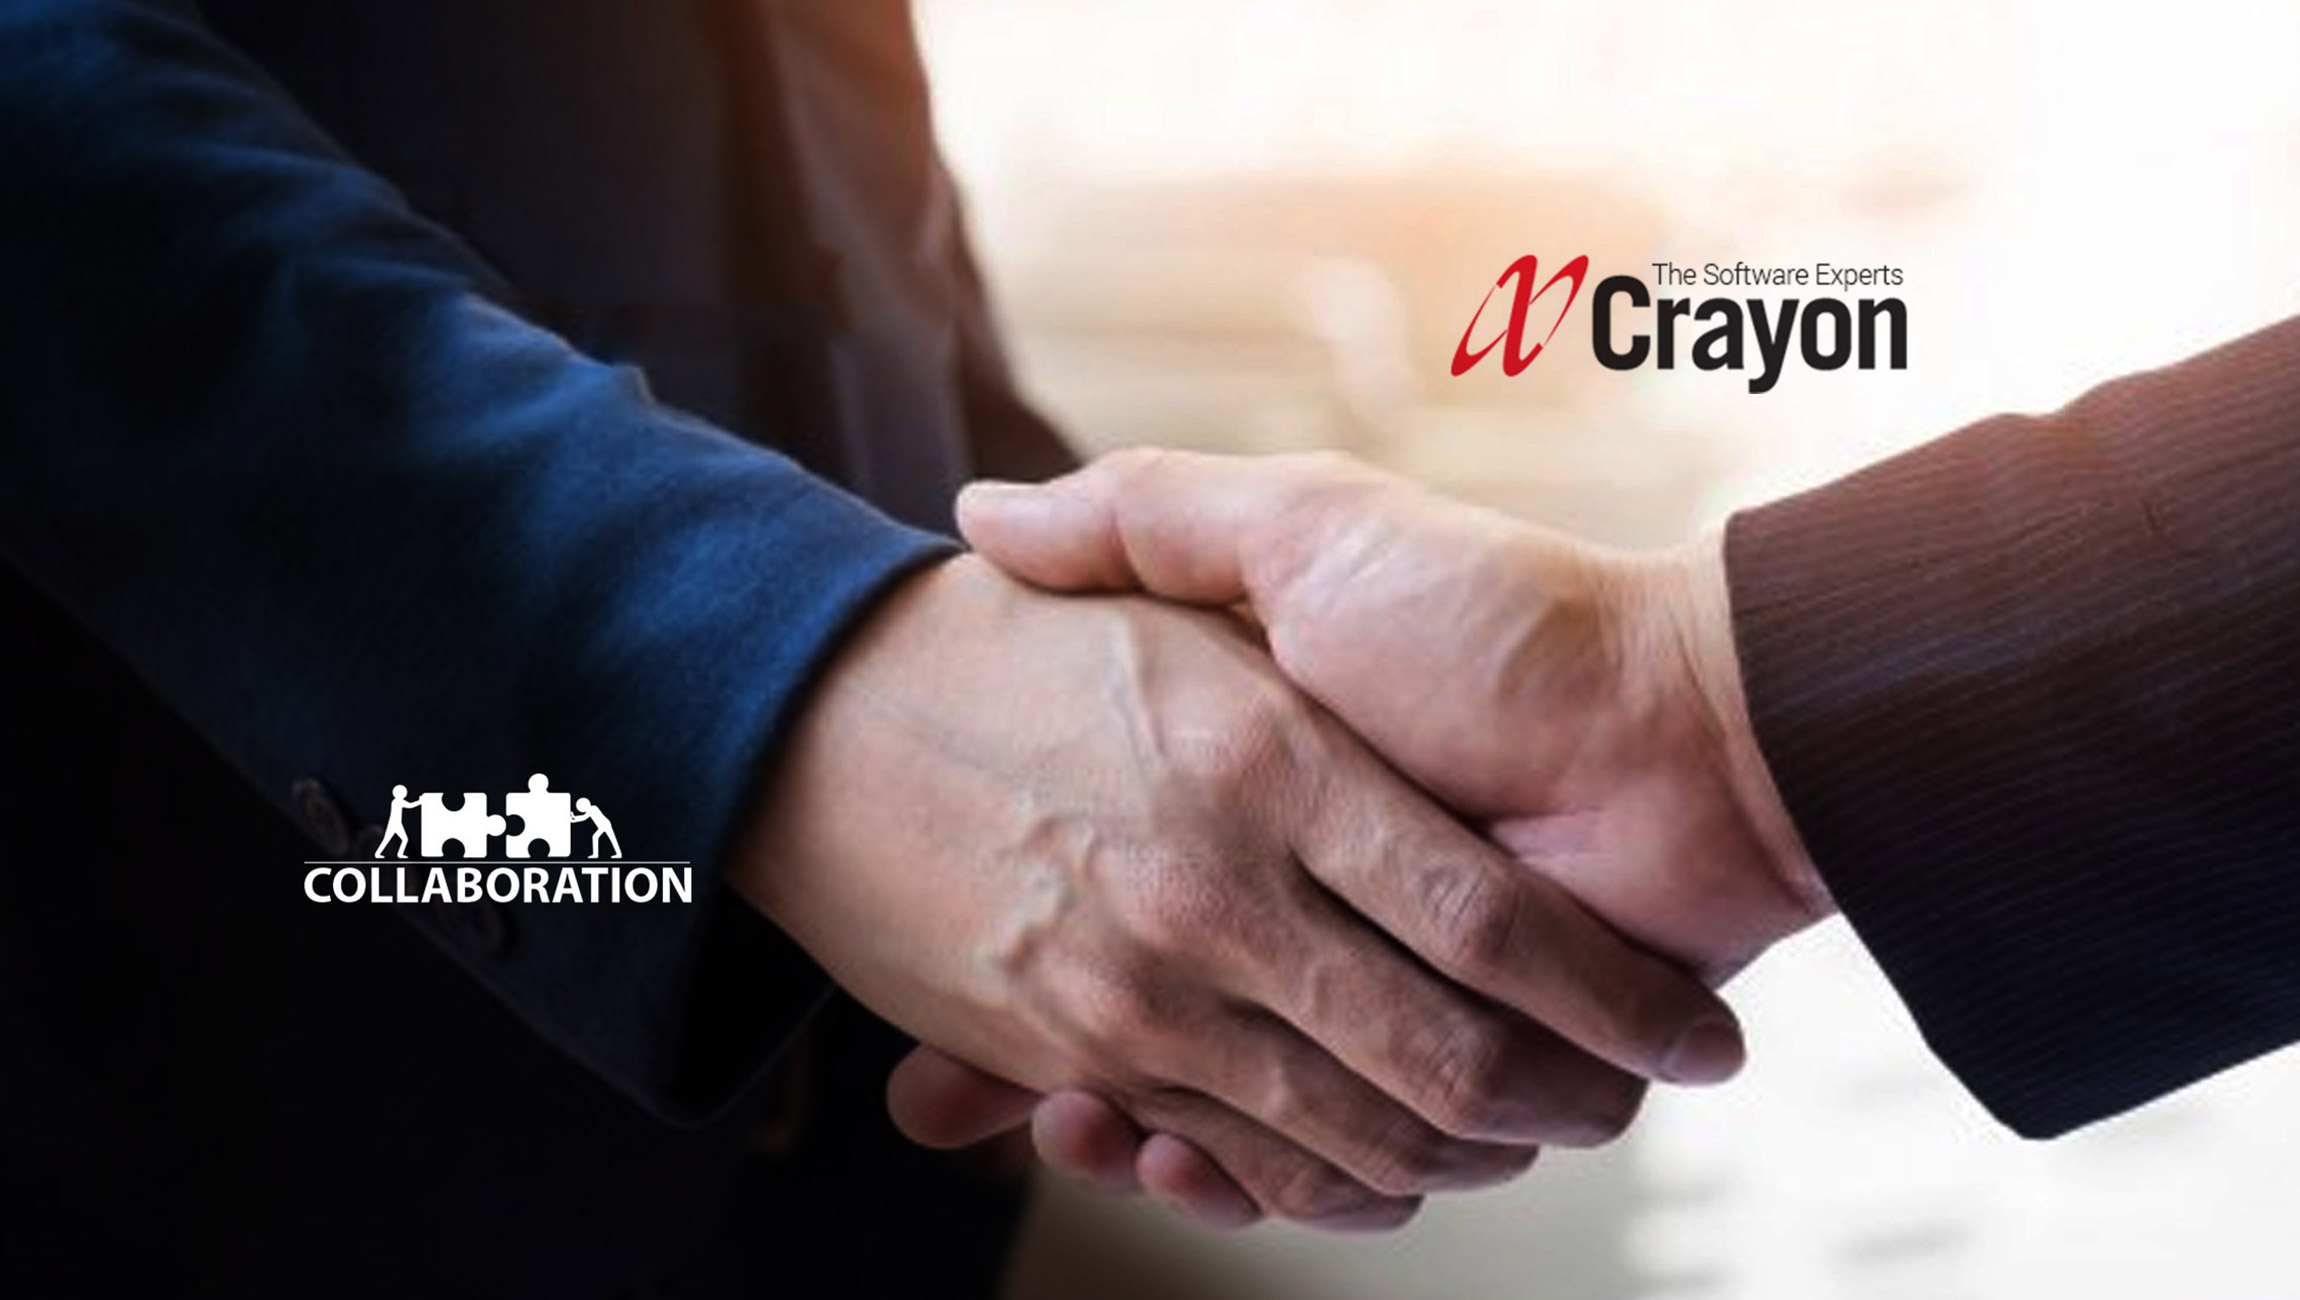 Crayon Receives AWS Well-Architected Partner Status